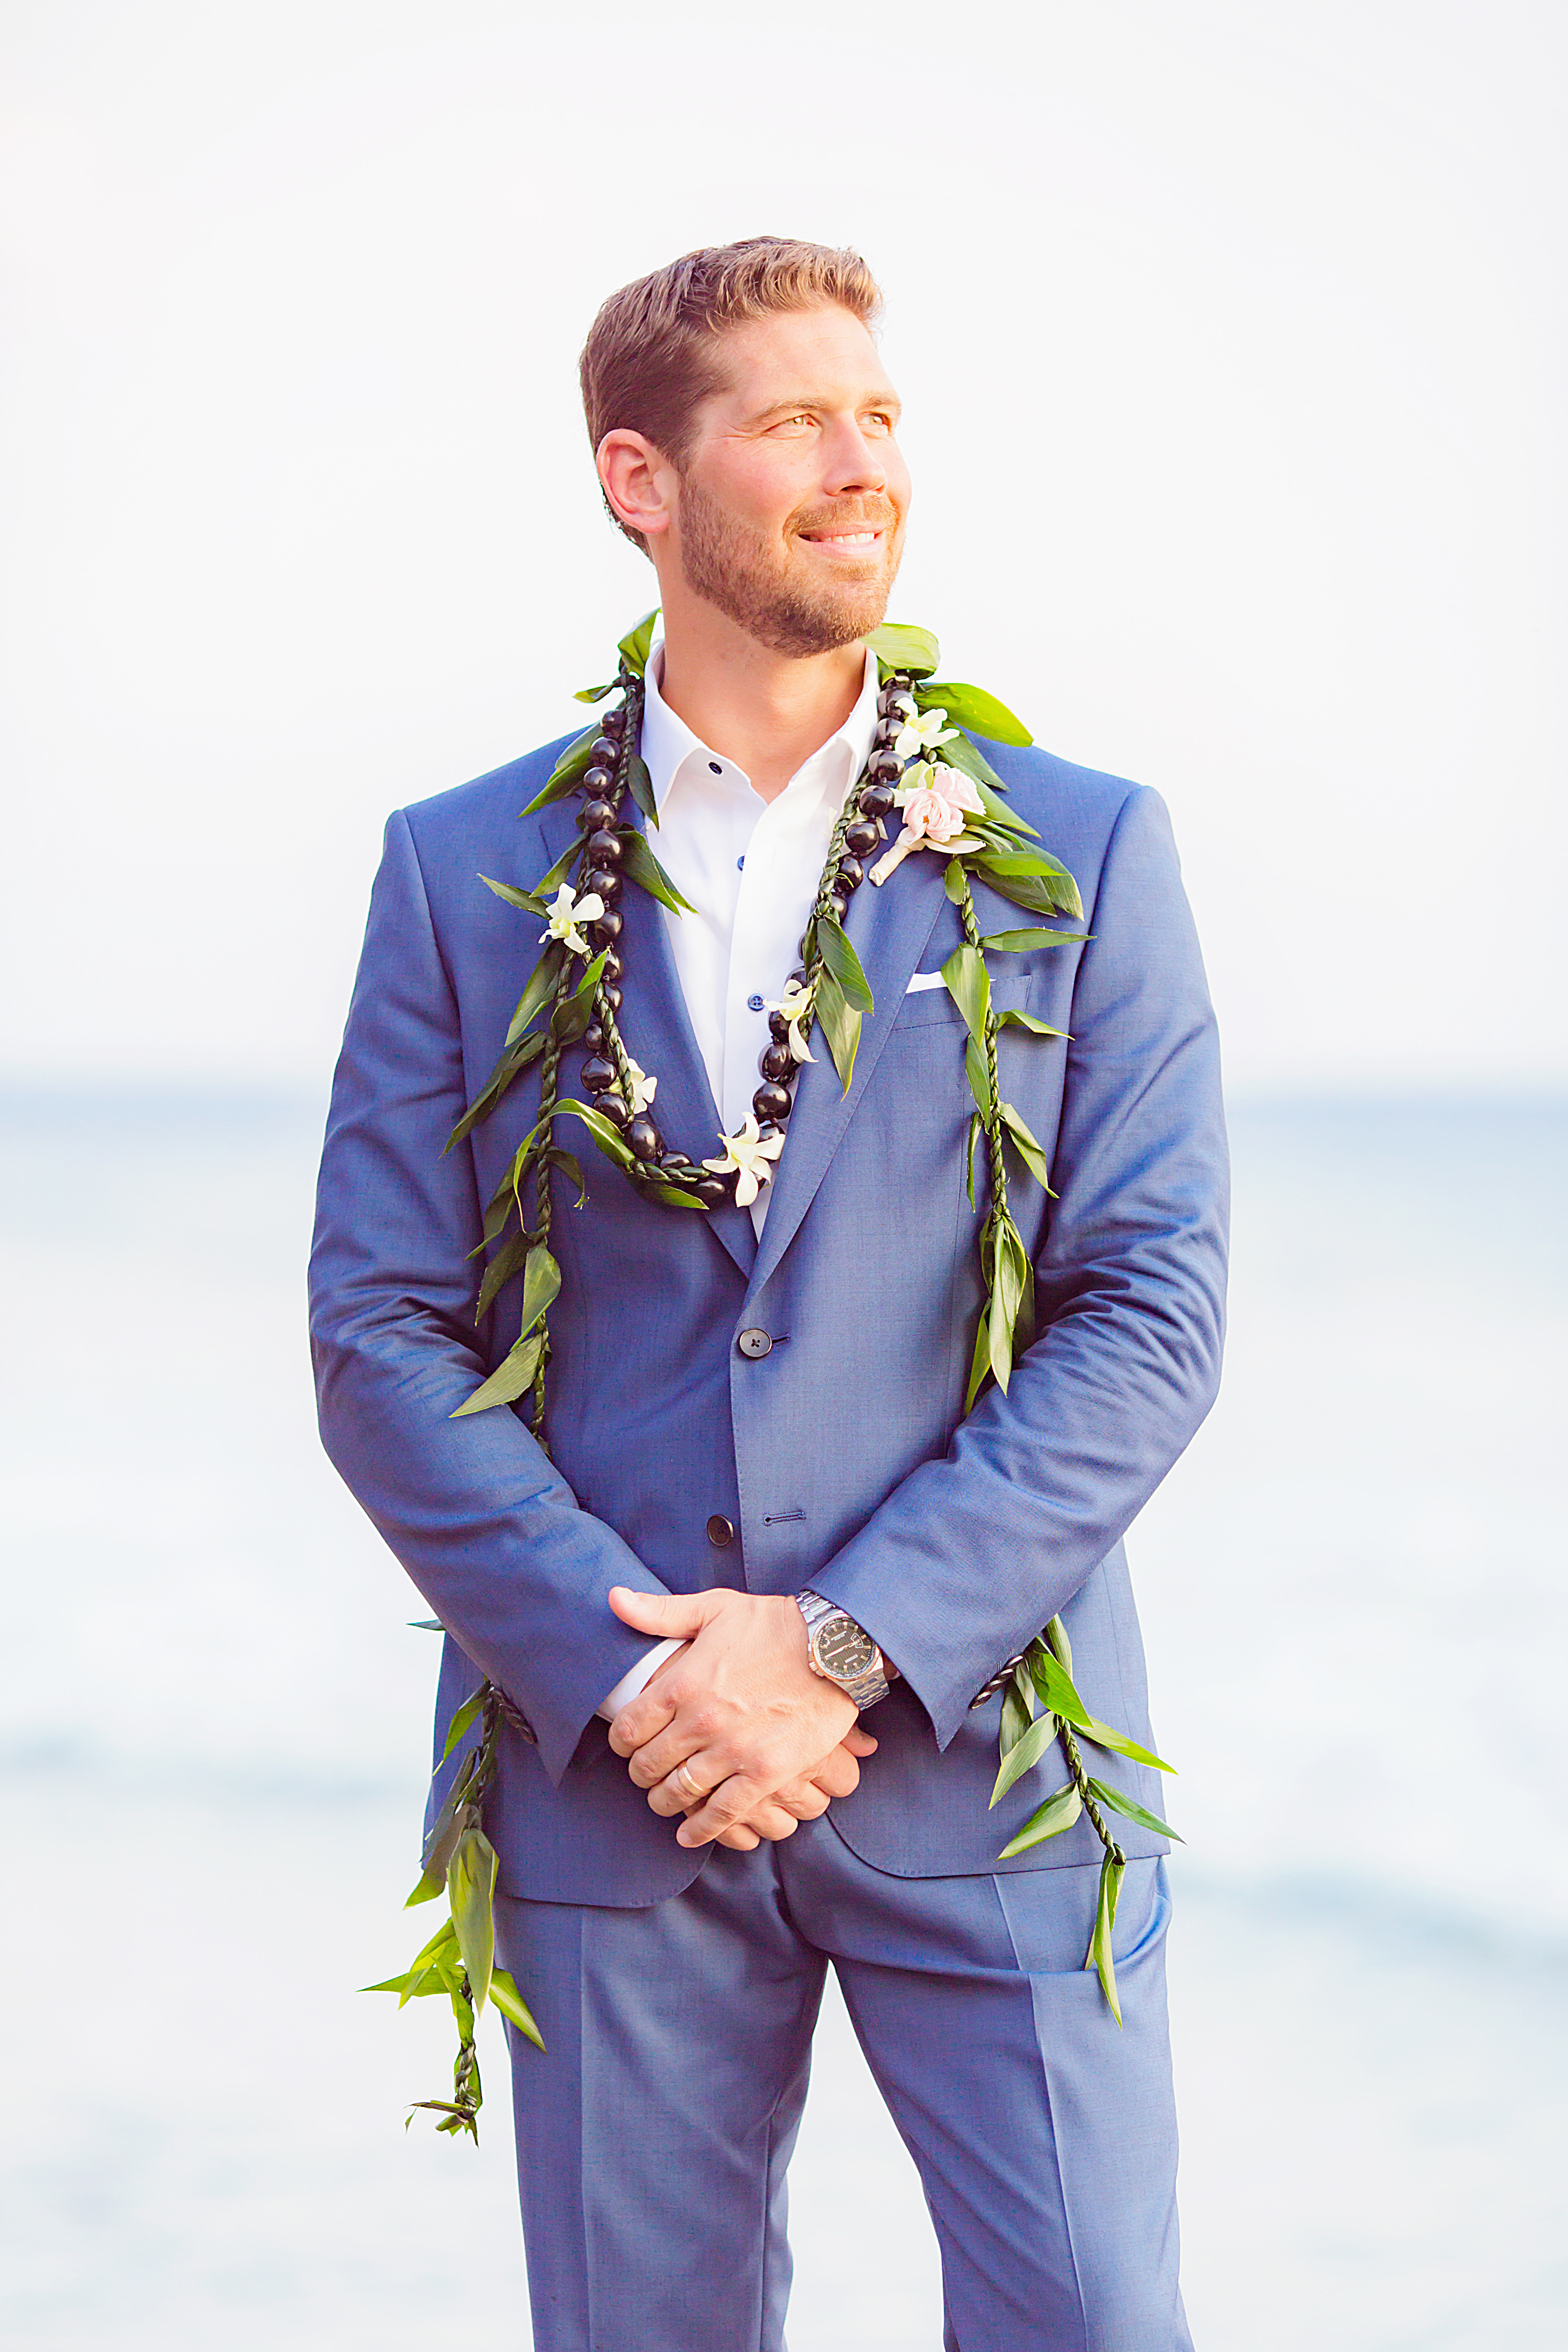 Maui Groom Portrait | Destination Wedding in Maui | Maui Wedding Planner | Maui's Angels blog